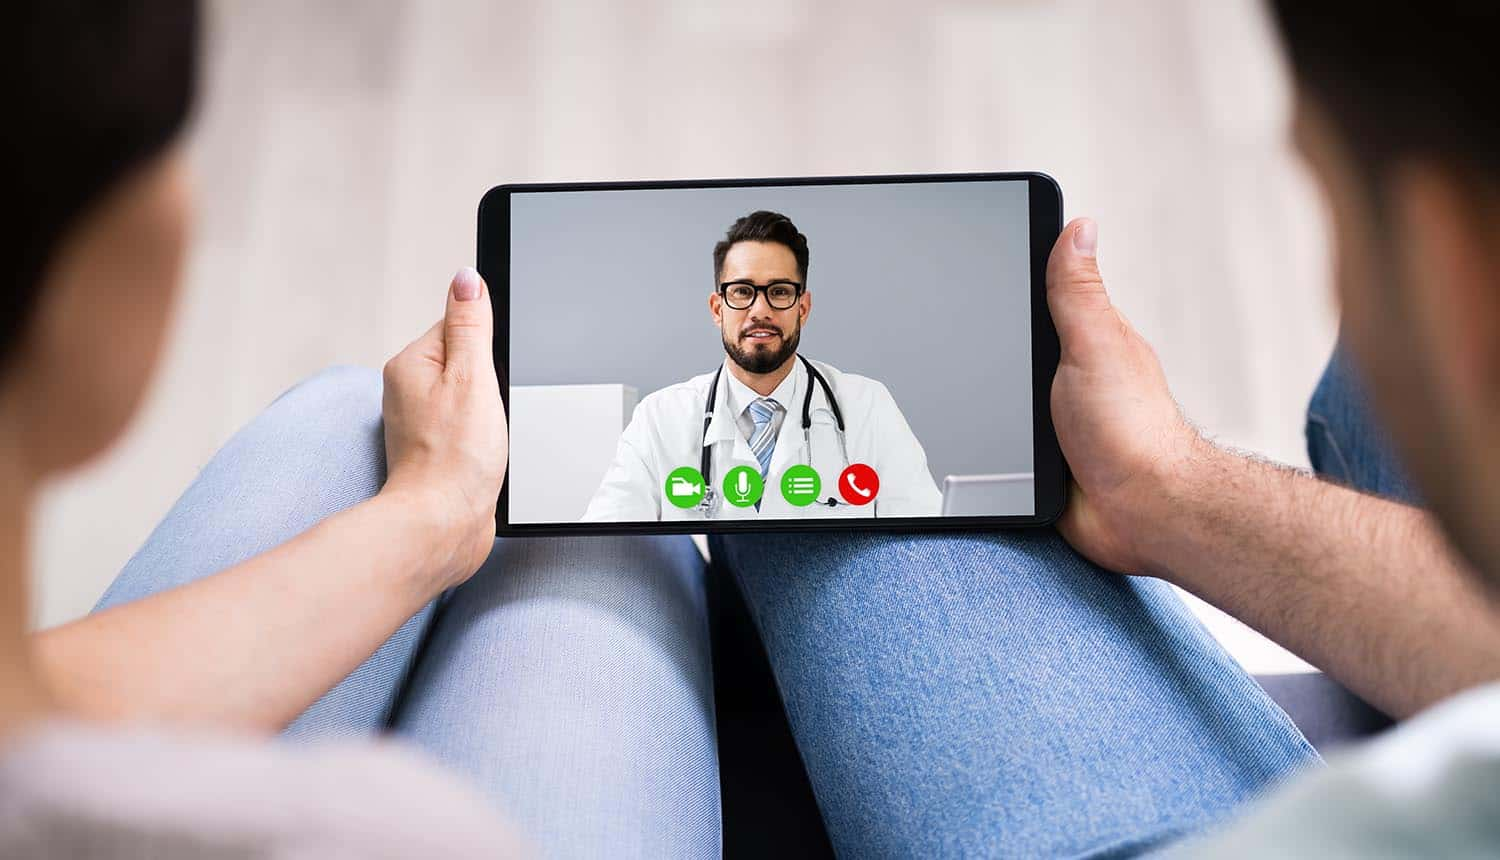 Couple using telehealth services in video conference call with doctor showing increased cyber threats